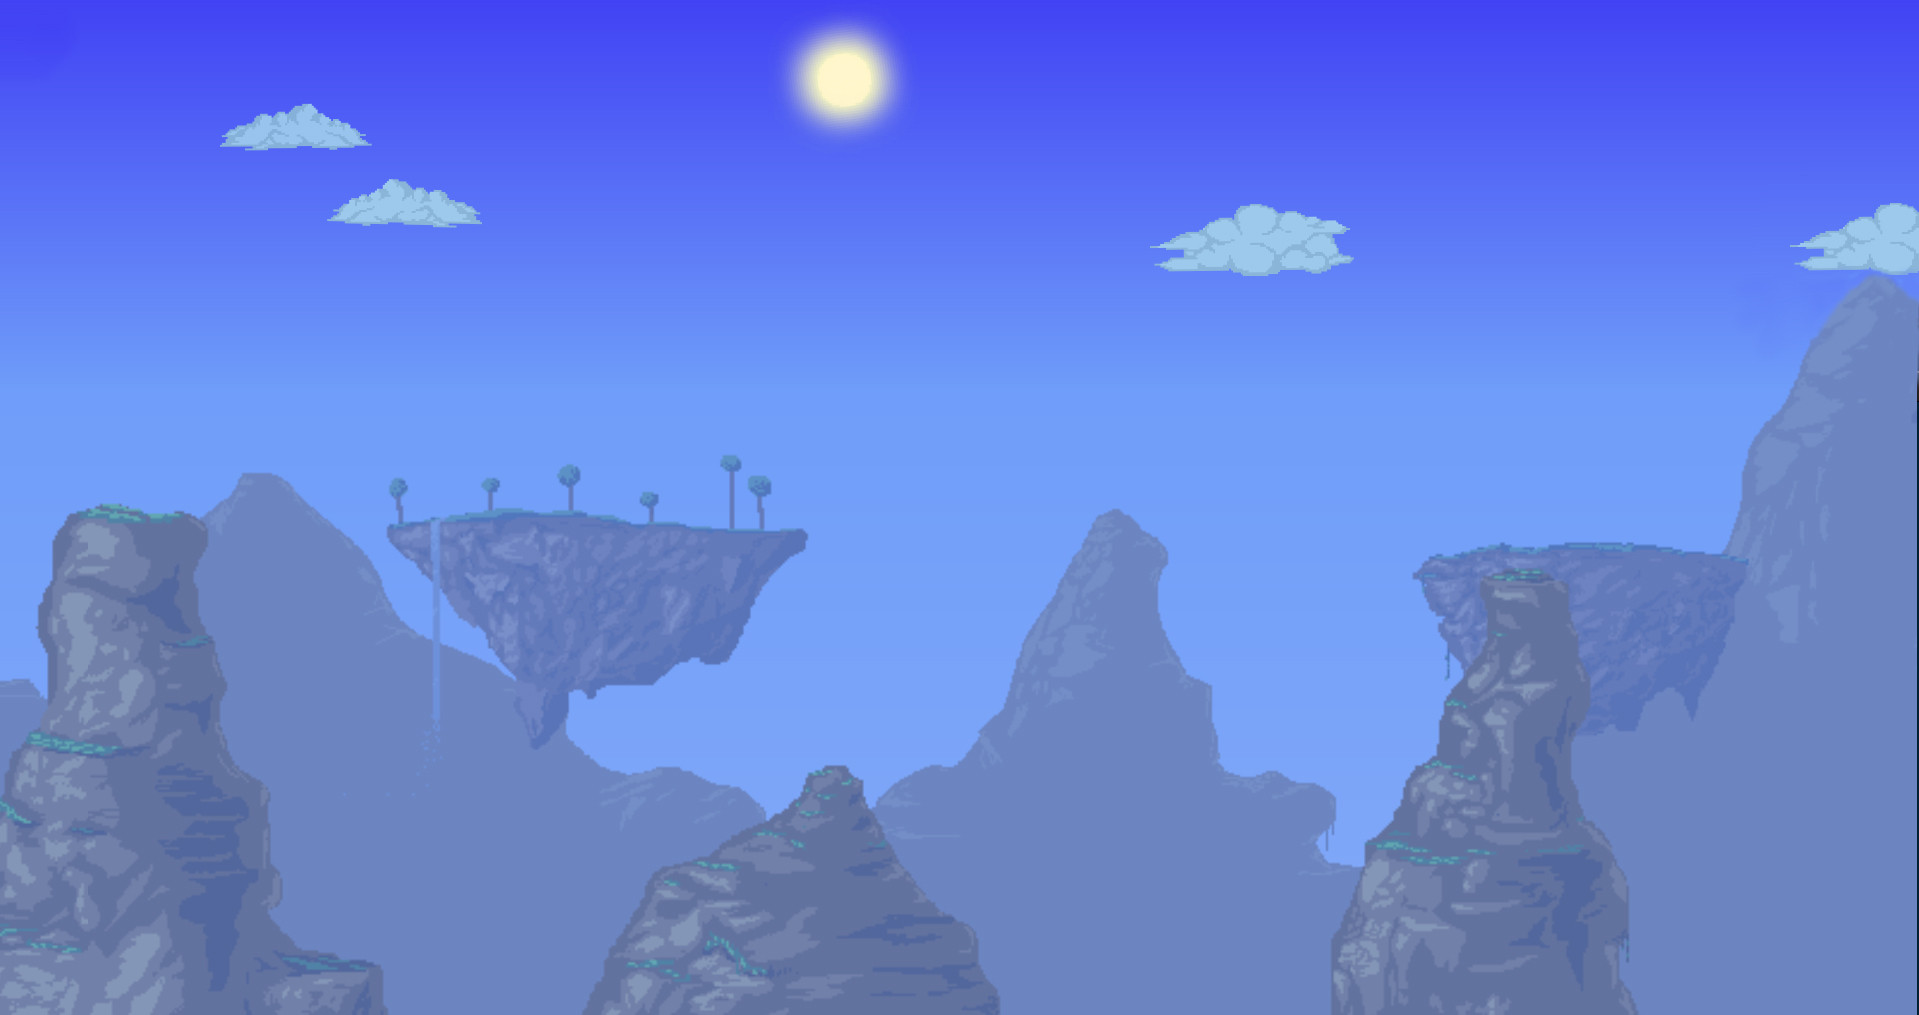 Top Wallpaper Minecraft Terraria - latest?cb\u003d20150321134004  Perfect Image Reference_216772.net/terrariamobileversion/images/5/50/Wiki-background/revision/latest?cb\u003d20150321134004